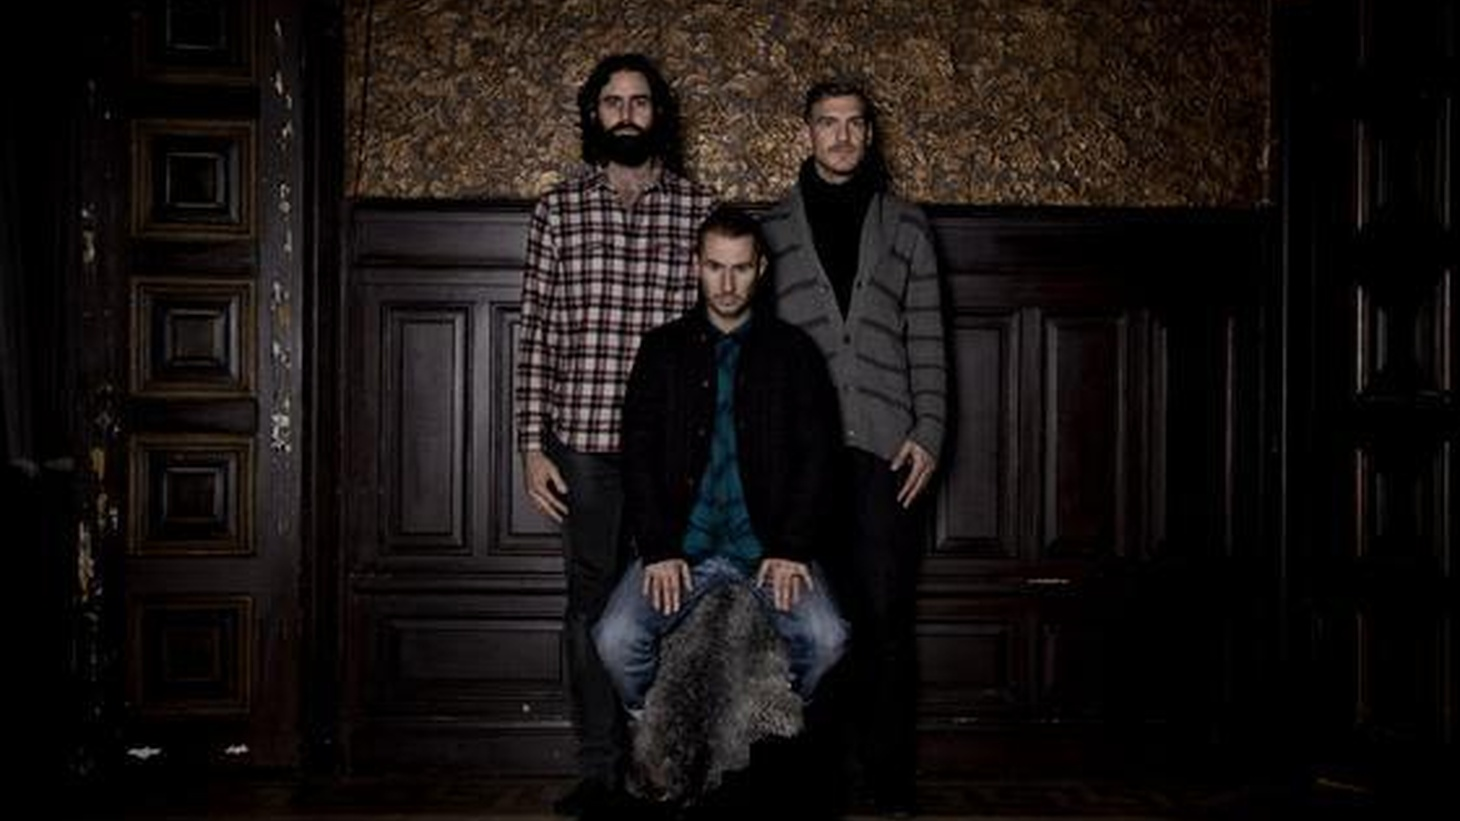 Miike Snow's alternative pop experiments have won them an avid fan-base around the world with two albums to their credit.